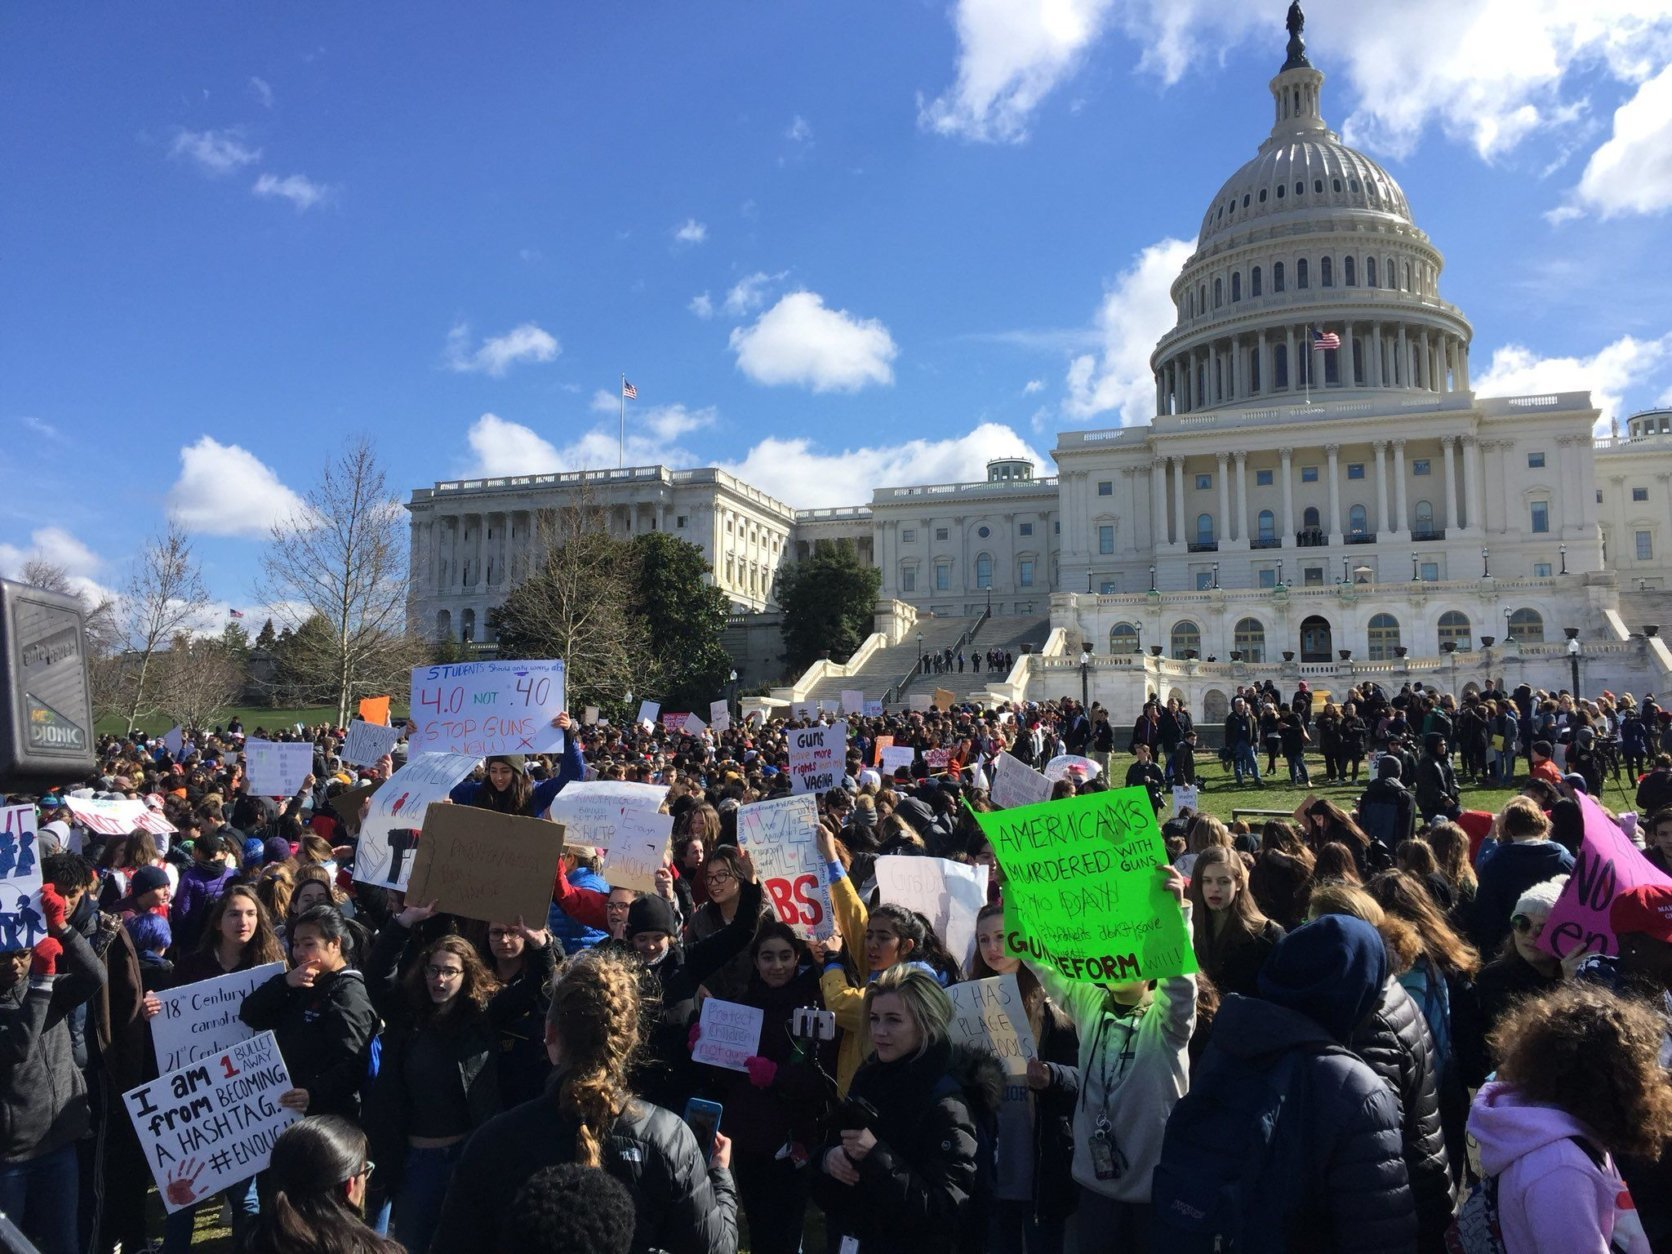 Students rally at the Capitol against gun violence on March 14, 2018. (WTOP/Kristi King)